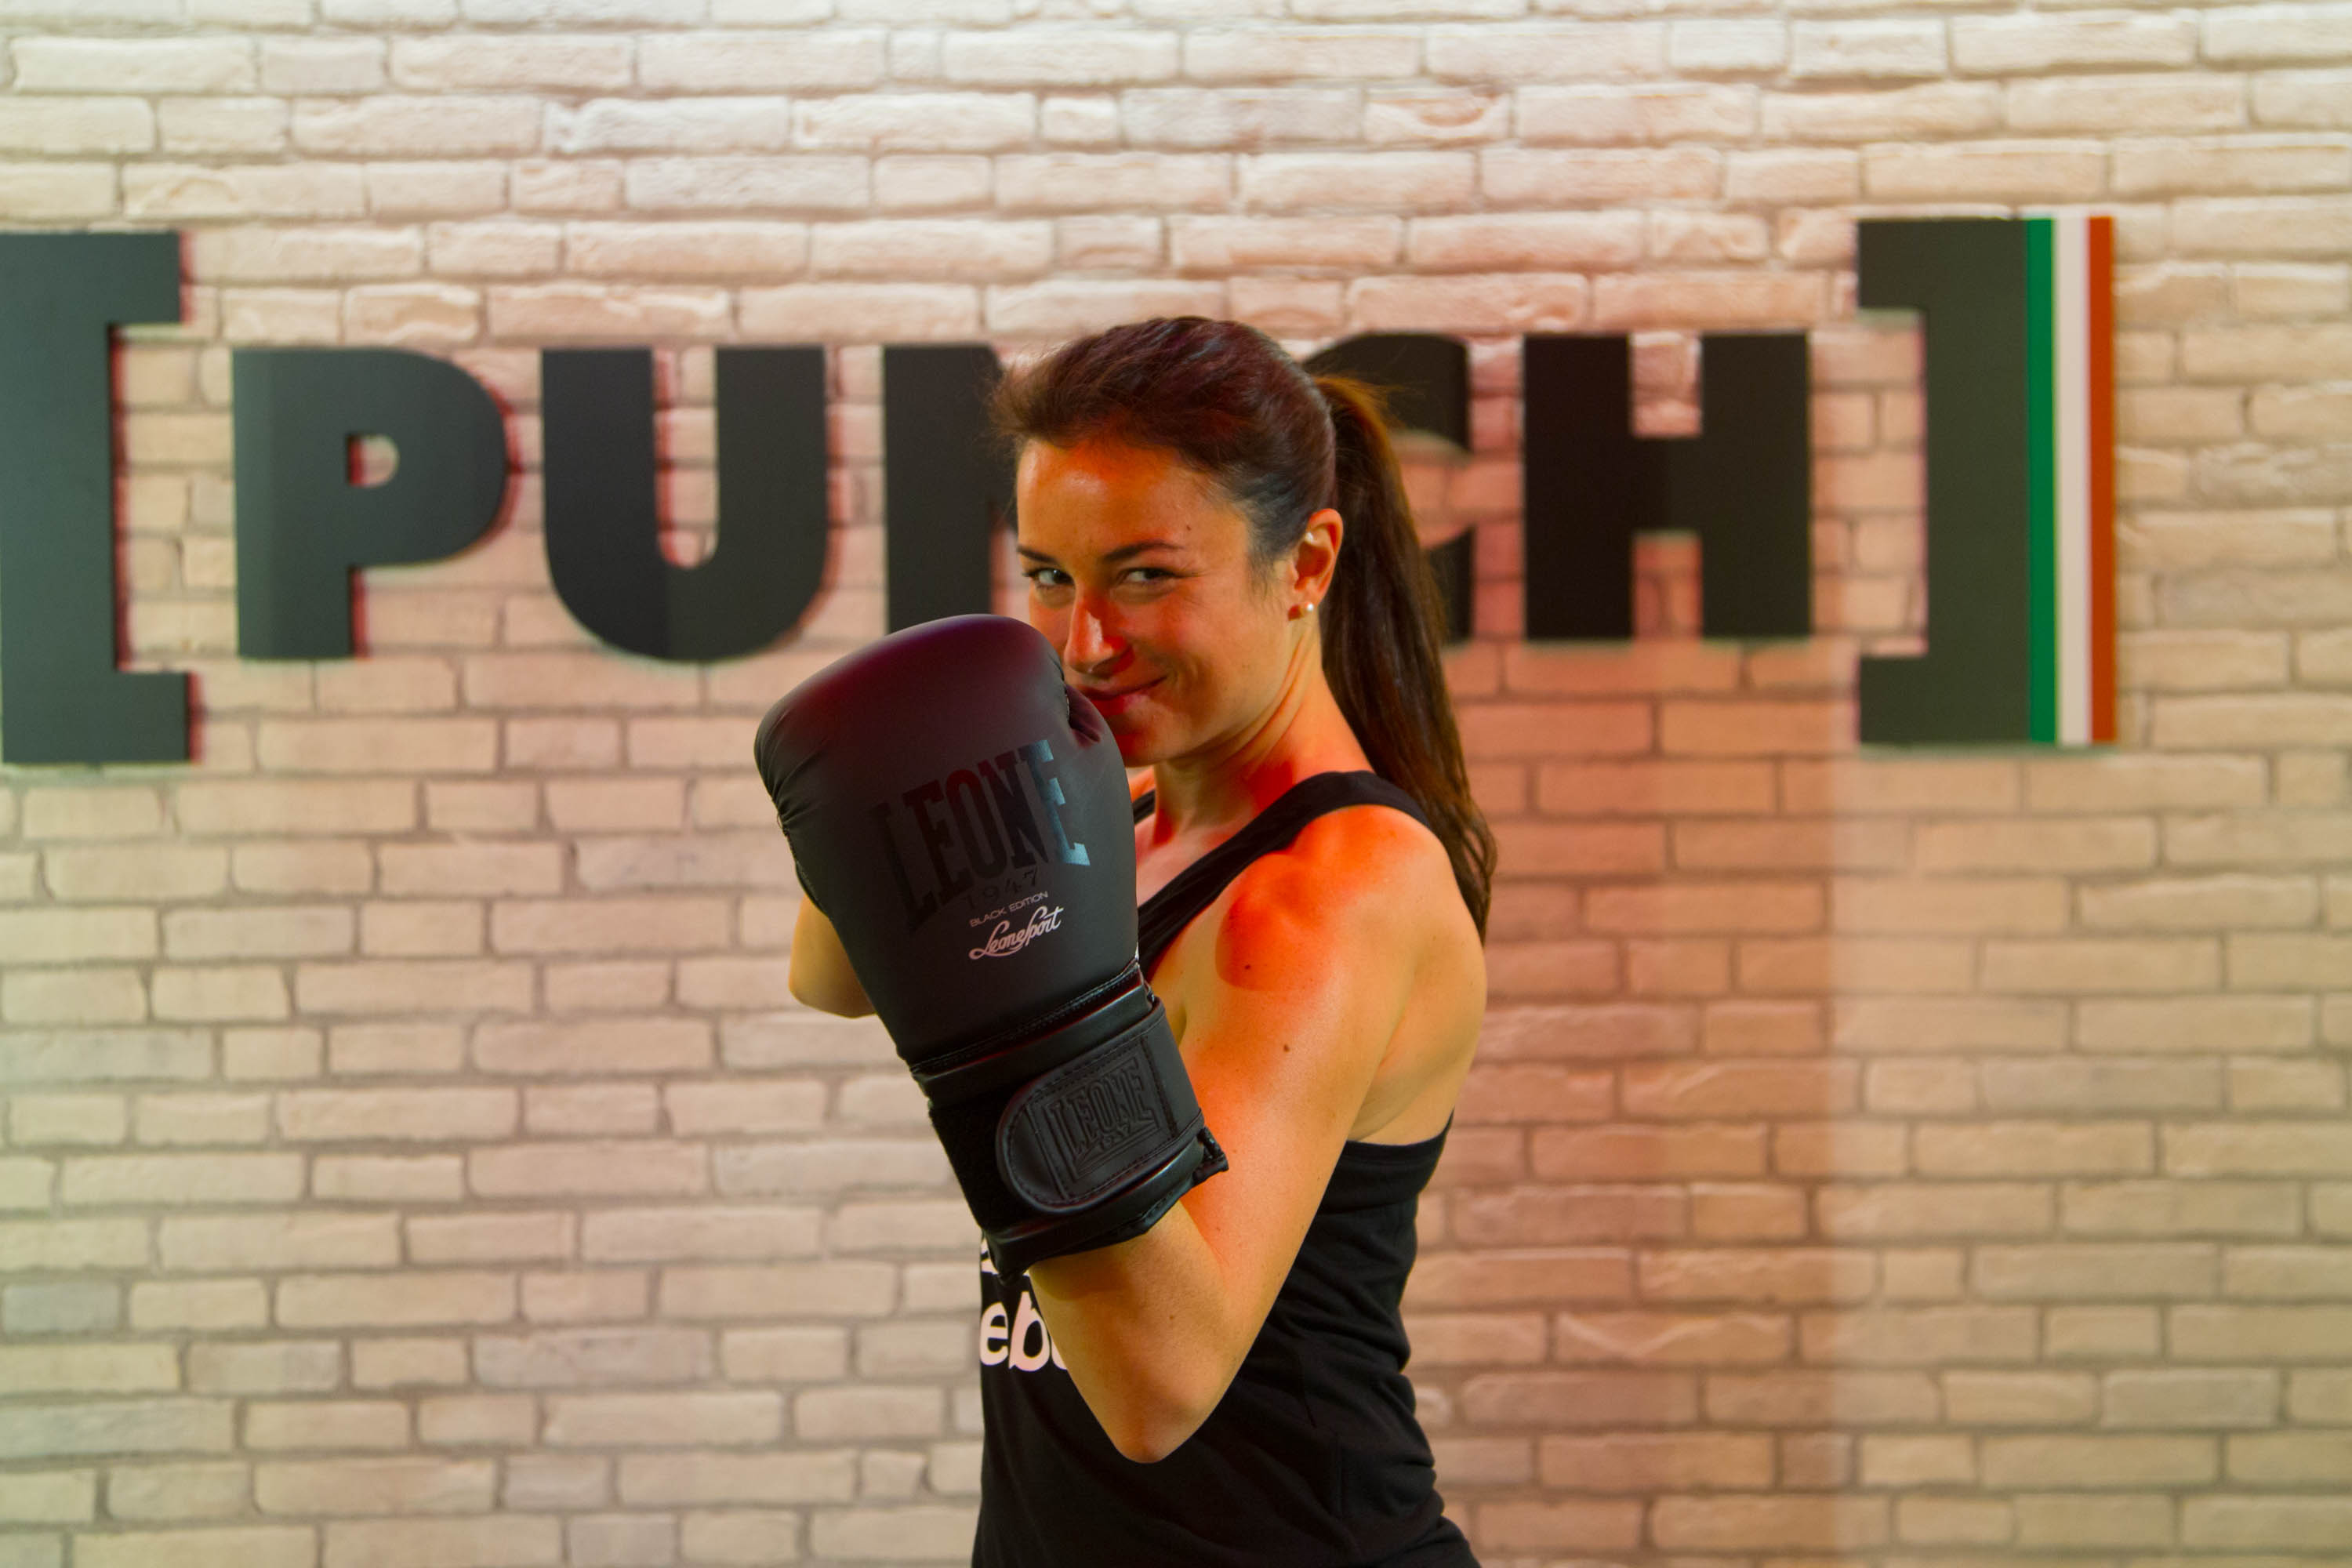 Virgin Active presenta PUNCH. E io l'ho provato.